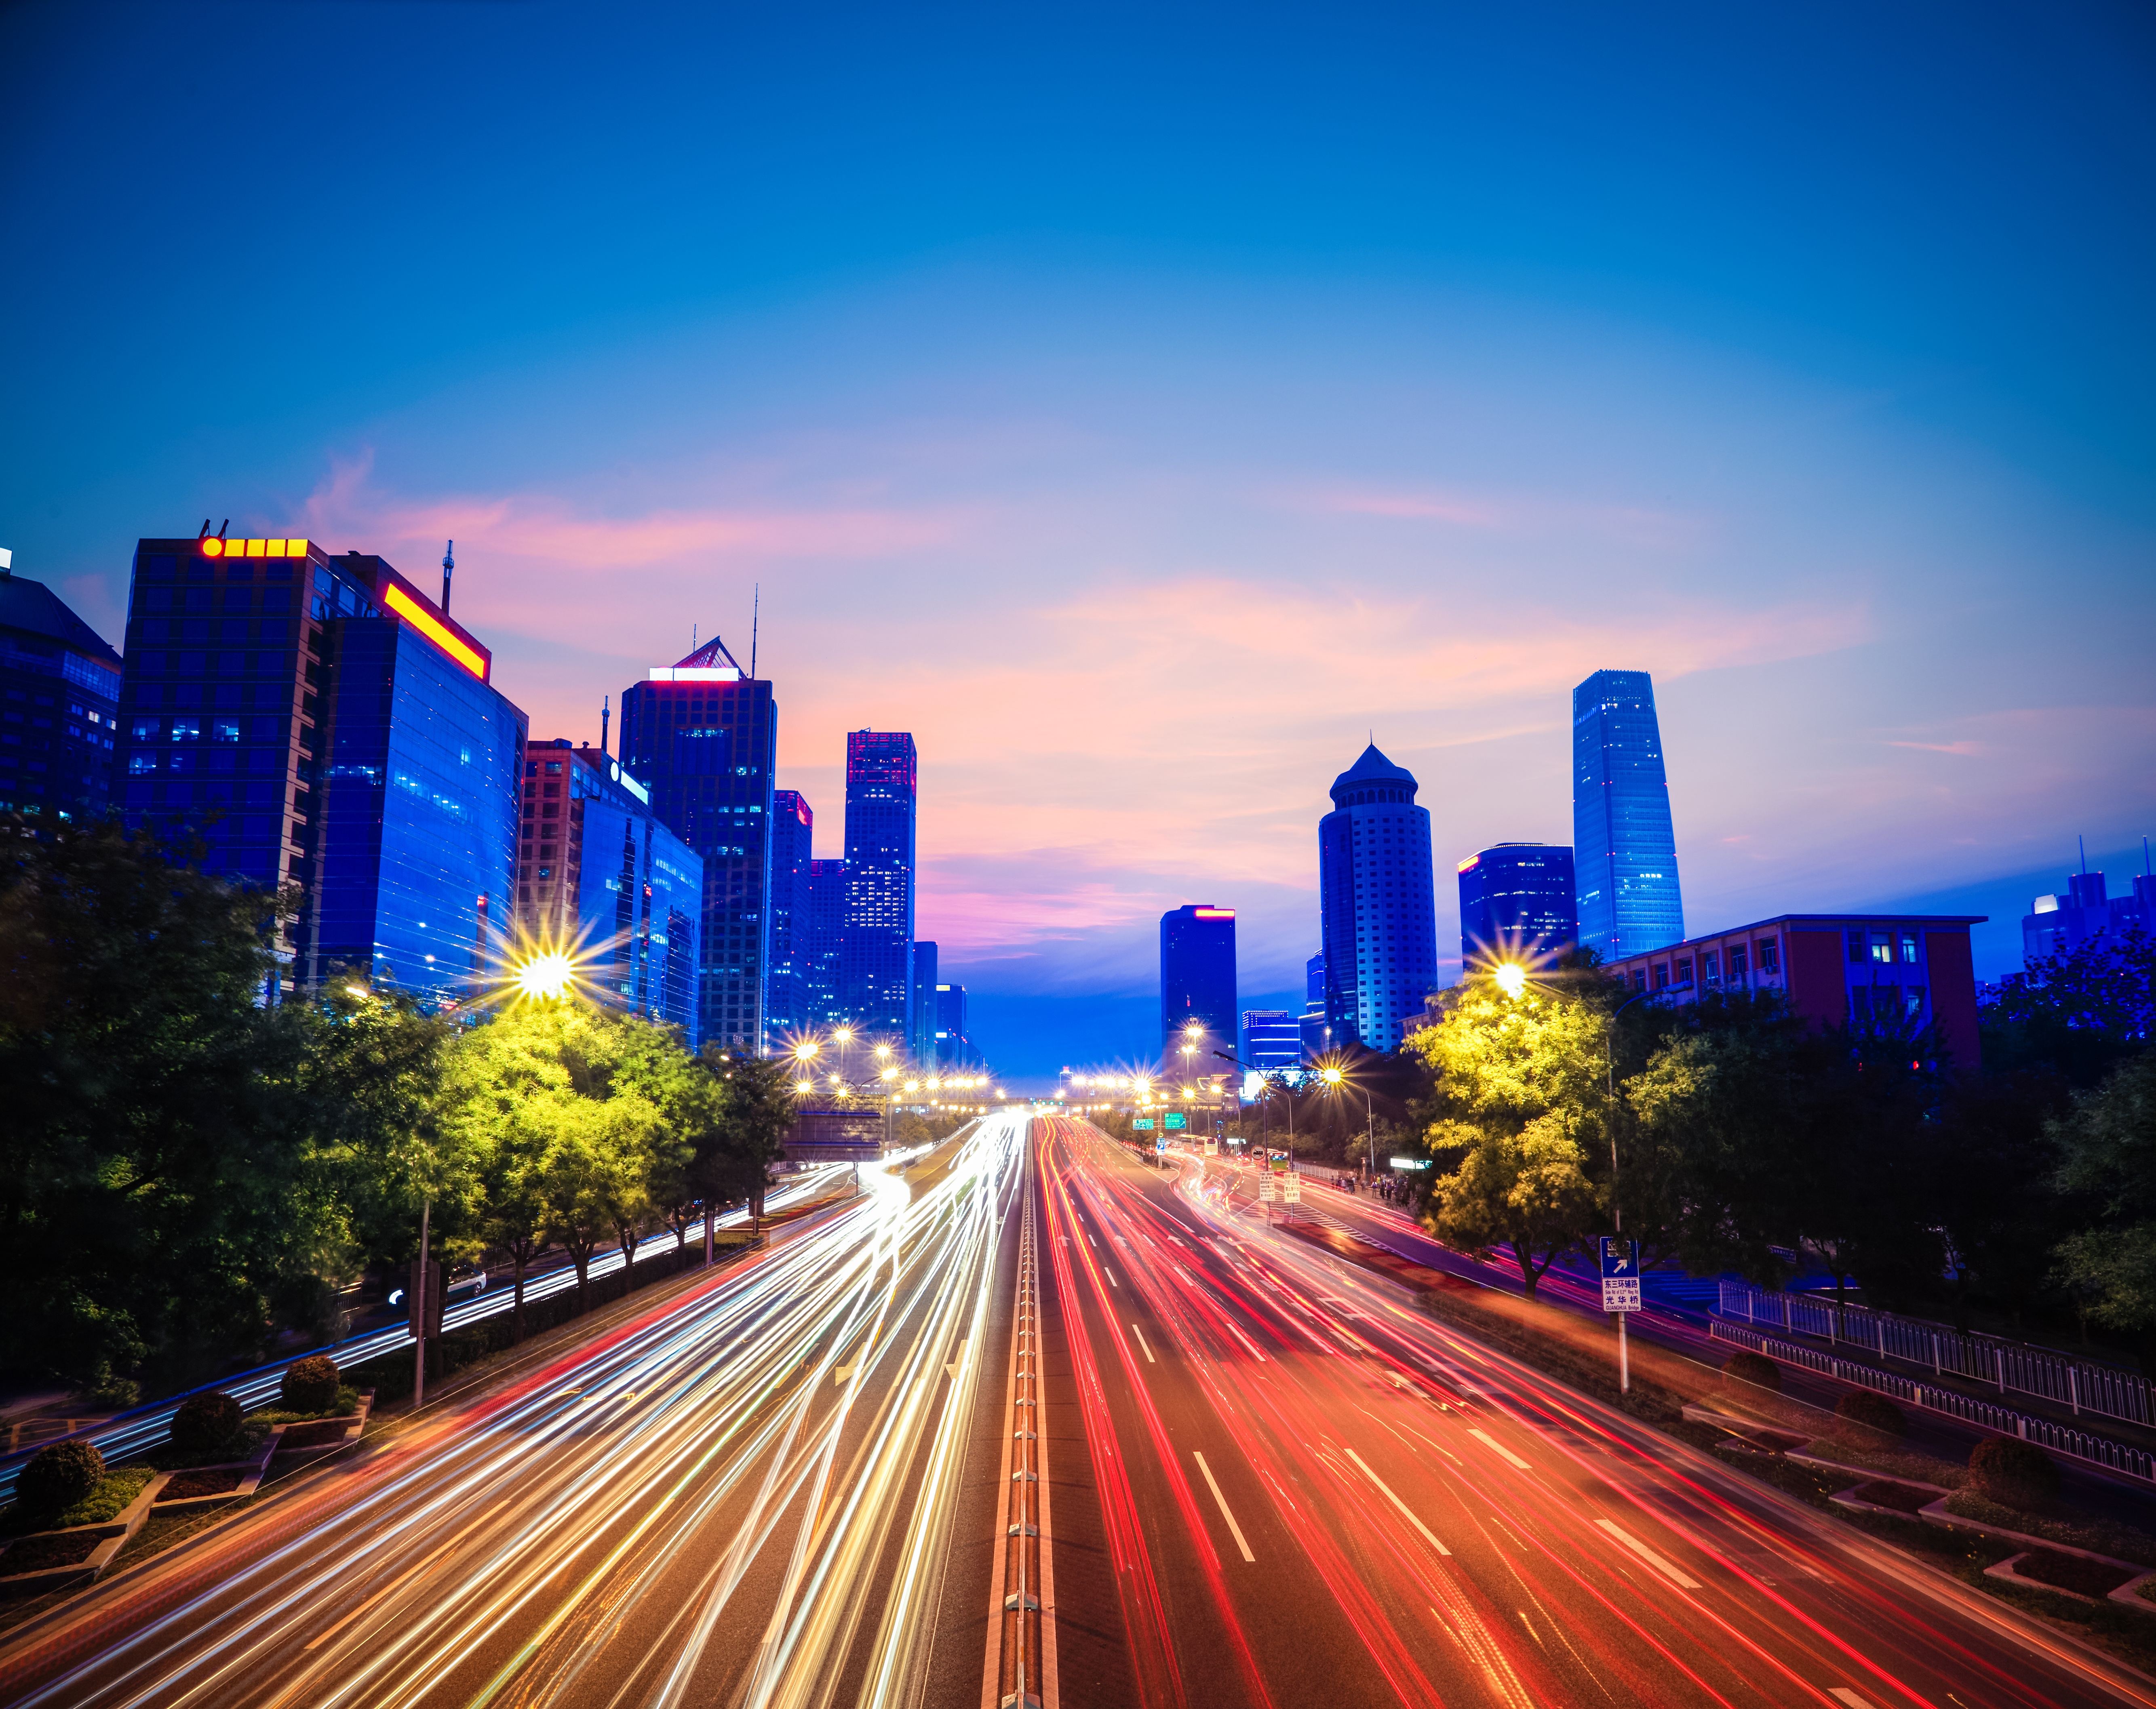 beijing-central-business-district-in-nightfall-PLVAPYN.jpg